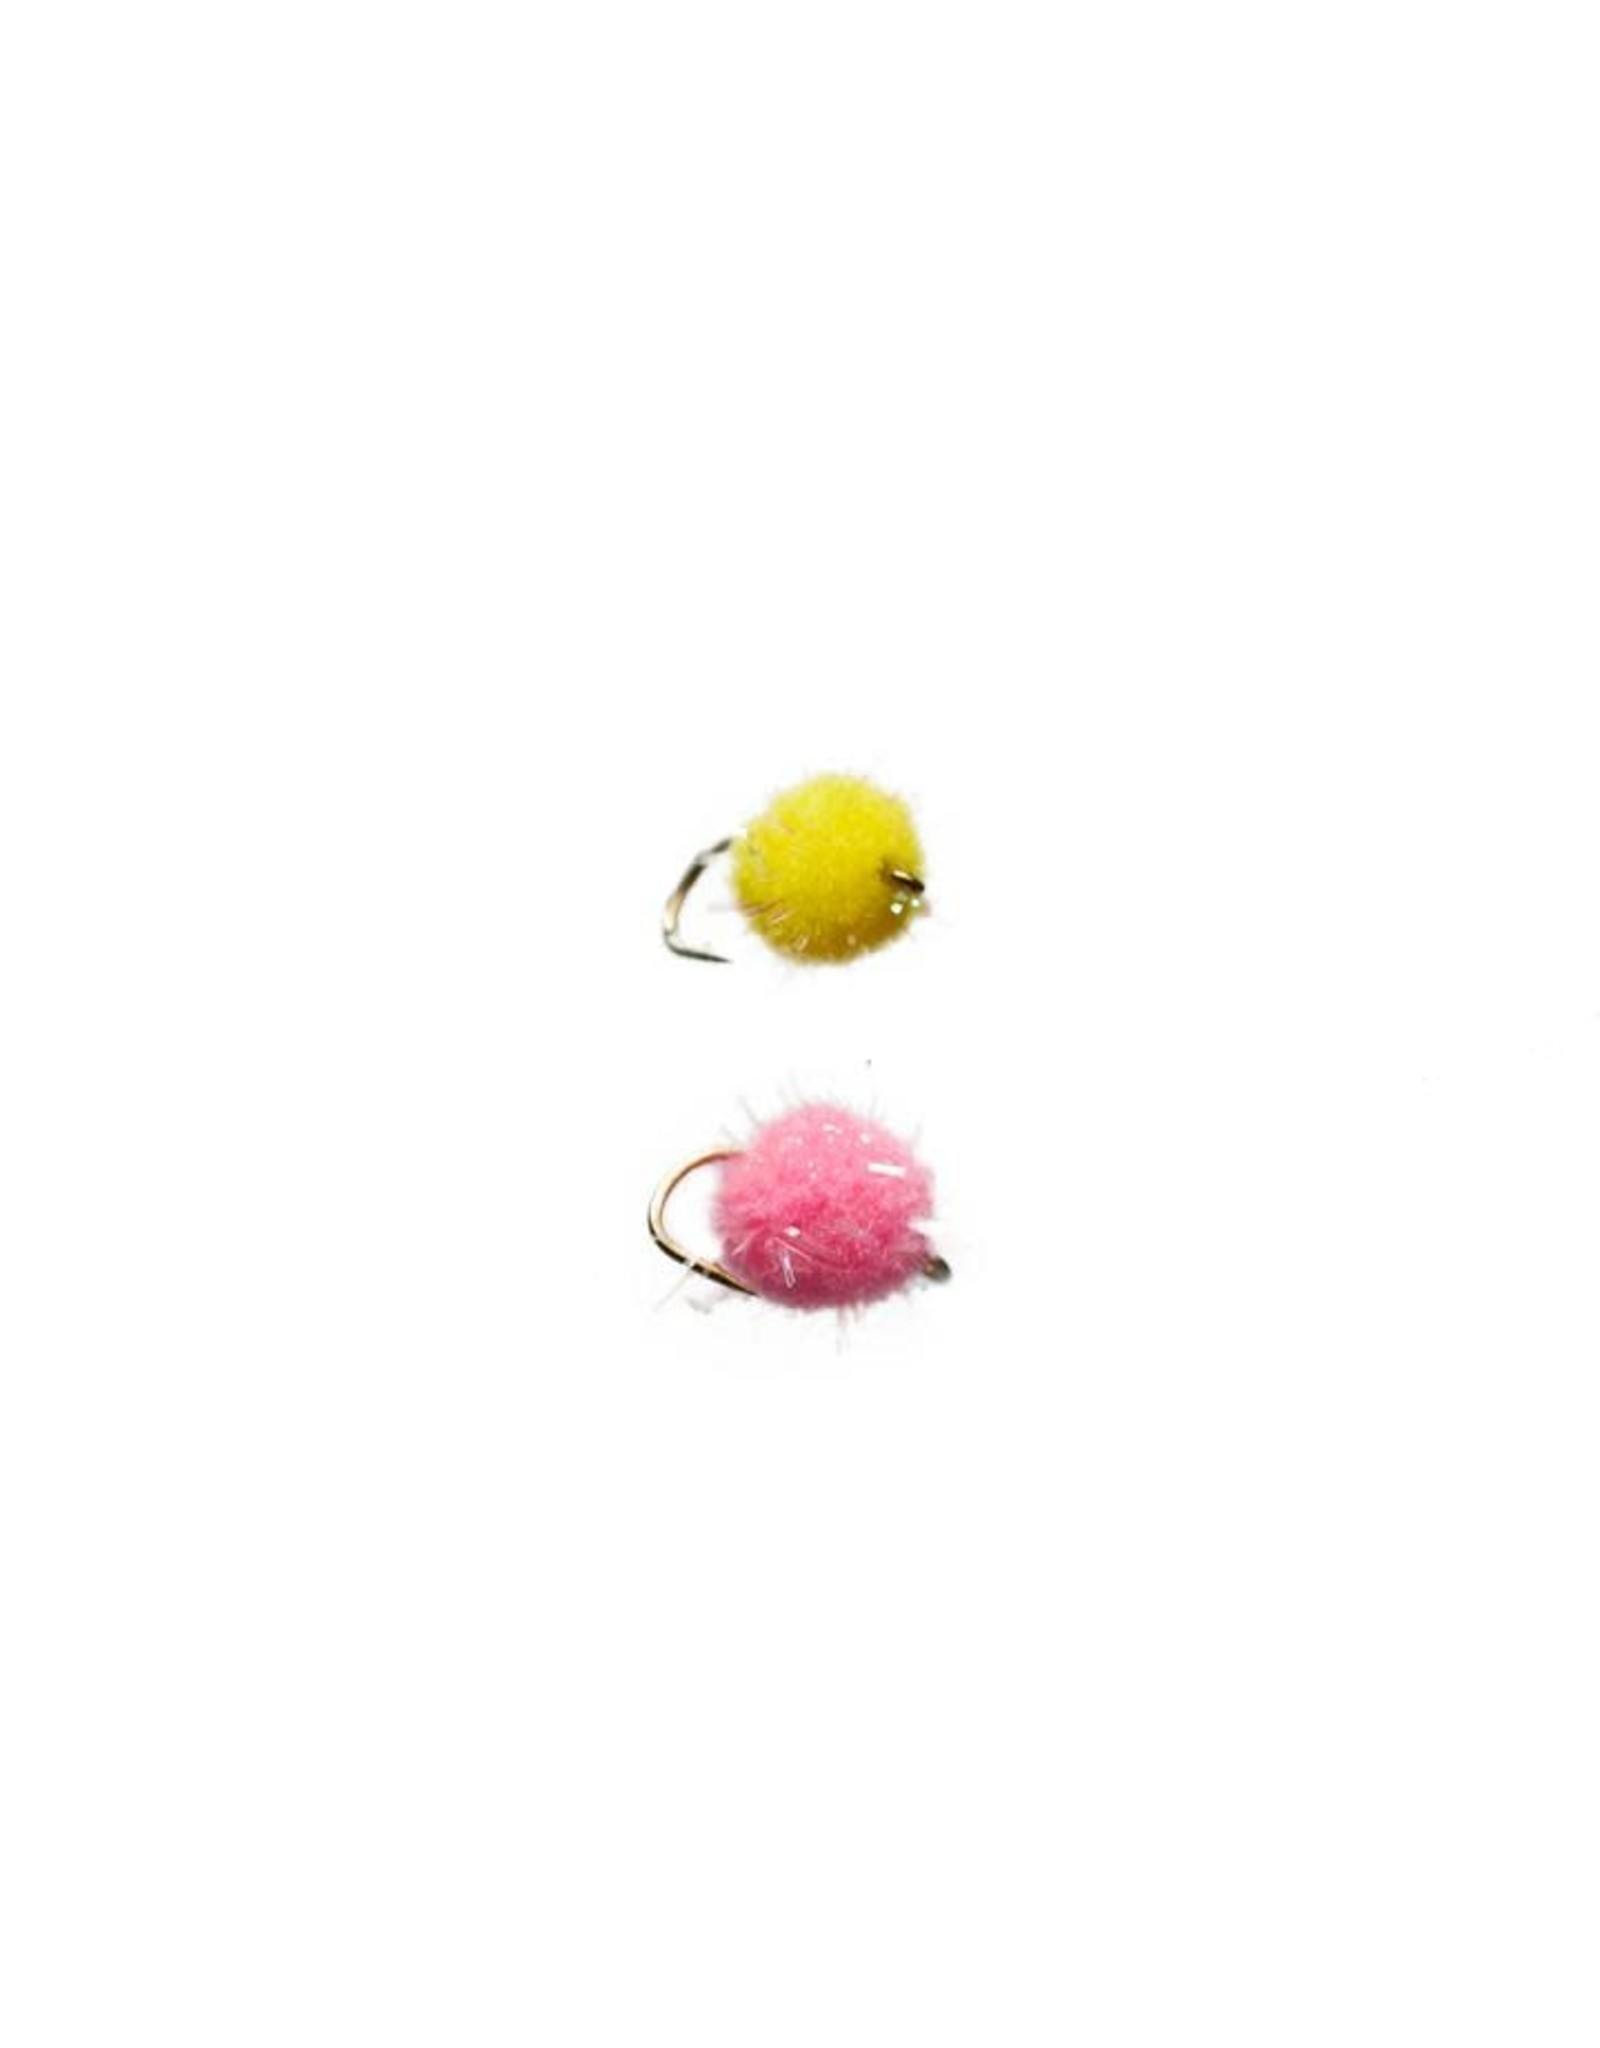 Cortland Line Cortland Egg Assortment 2 pack